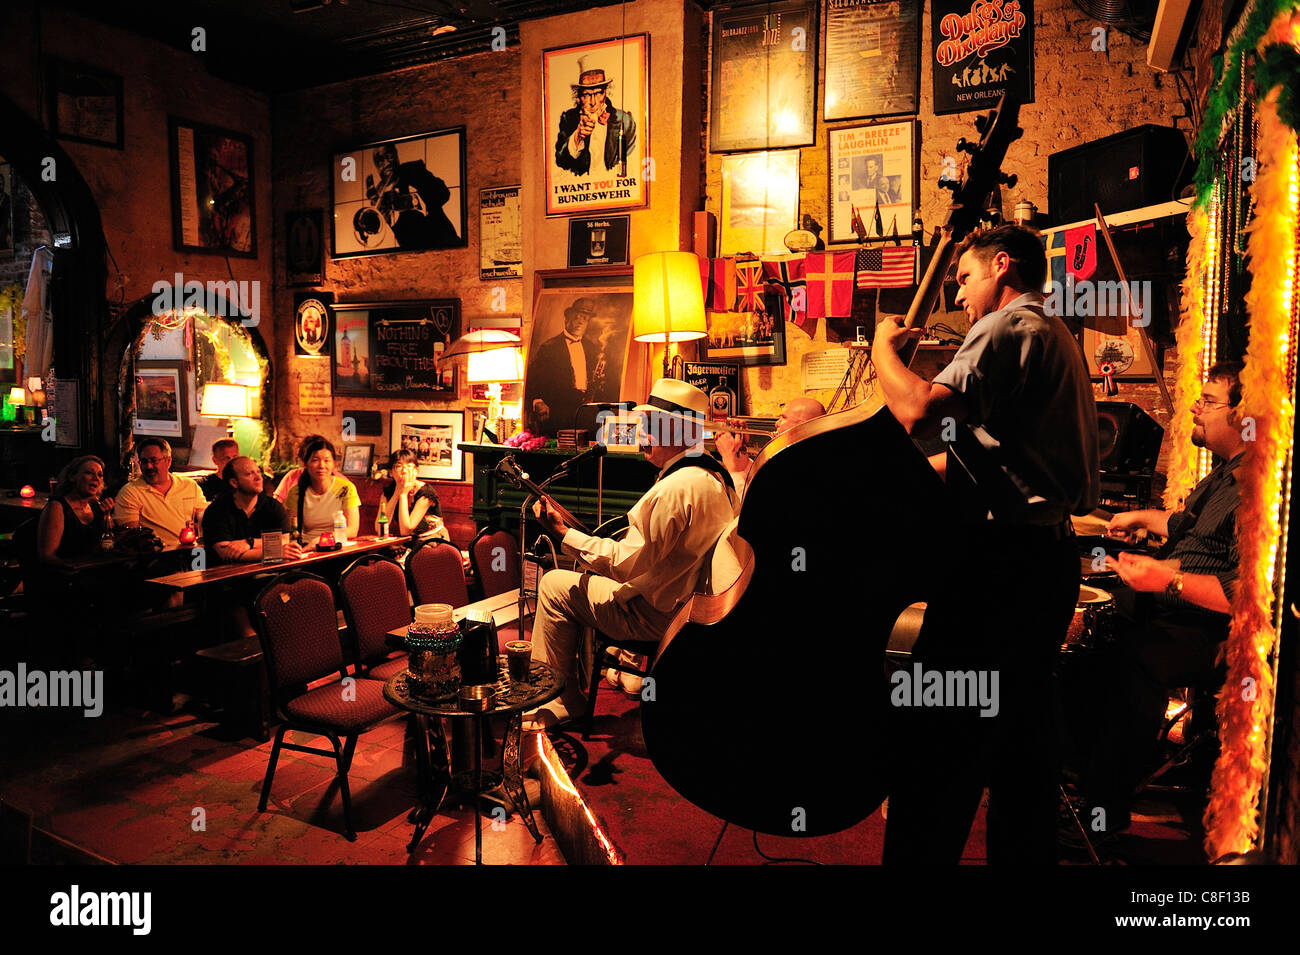 Barry Foulons, Live Music, band, playing, fritzel's, Bourbon Street, French Quarter, New Orleans, Louisiana, - Stock Image